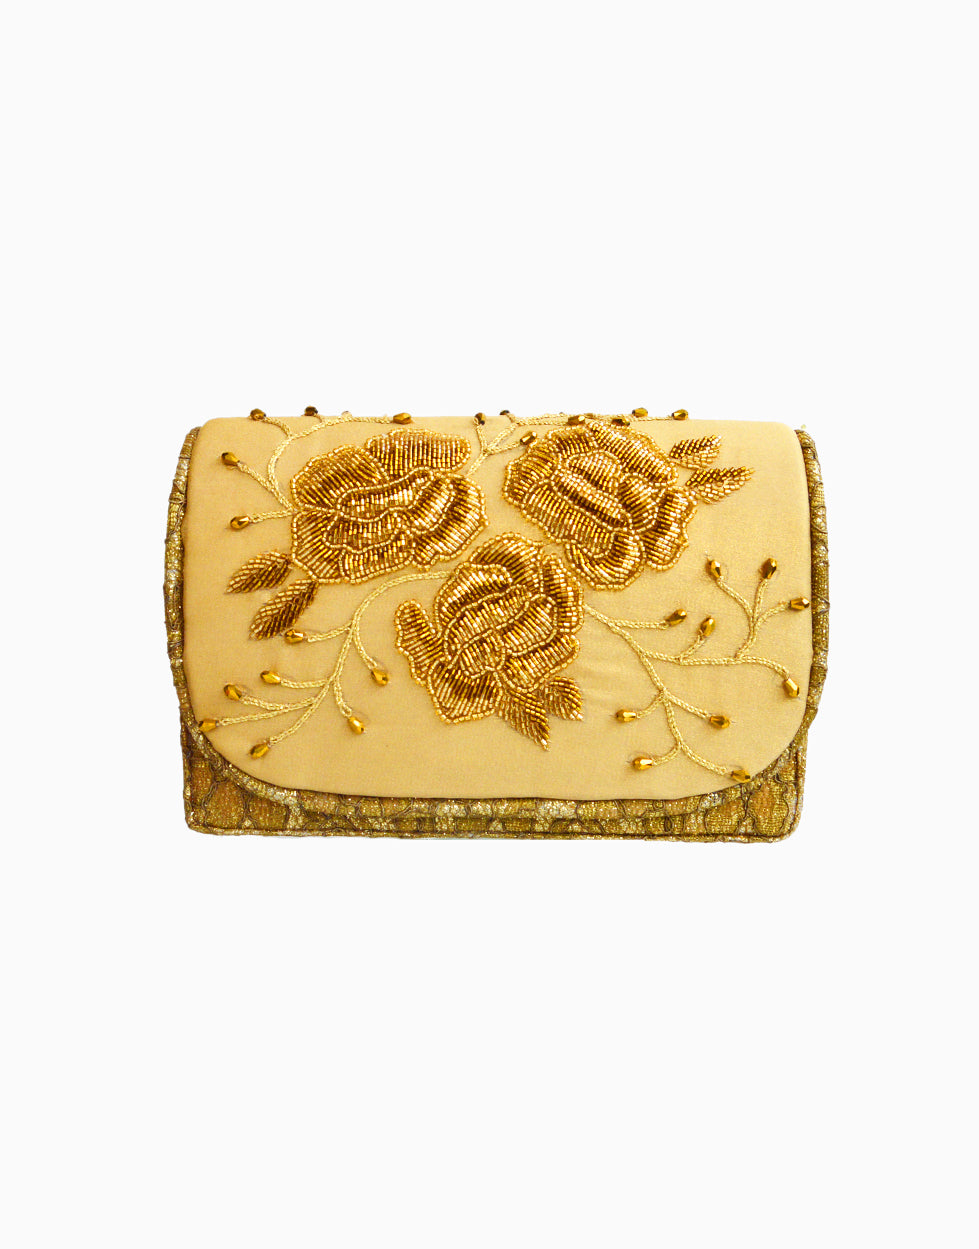 RUSARU DENEBOLA GOLD FLAP CLUTCH